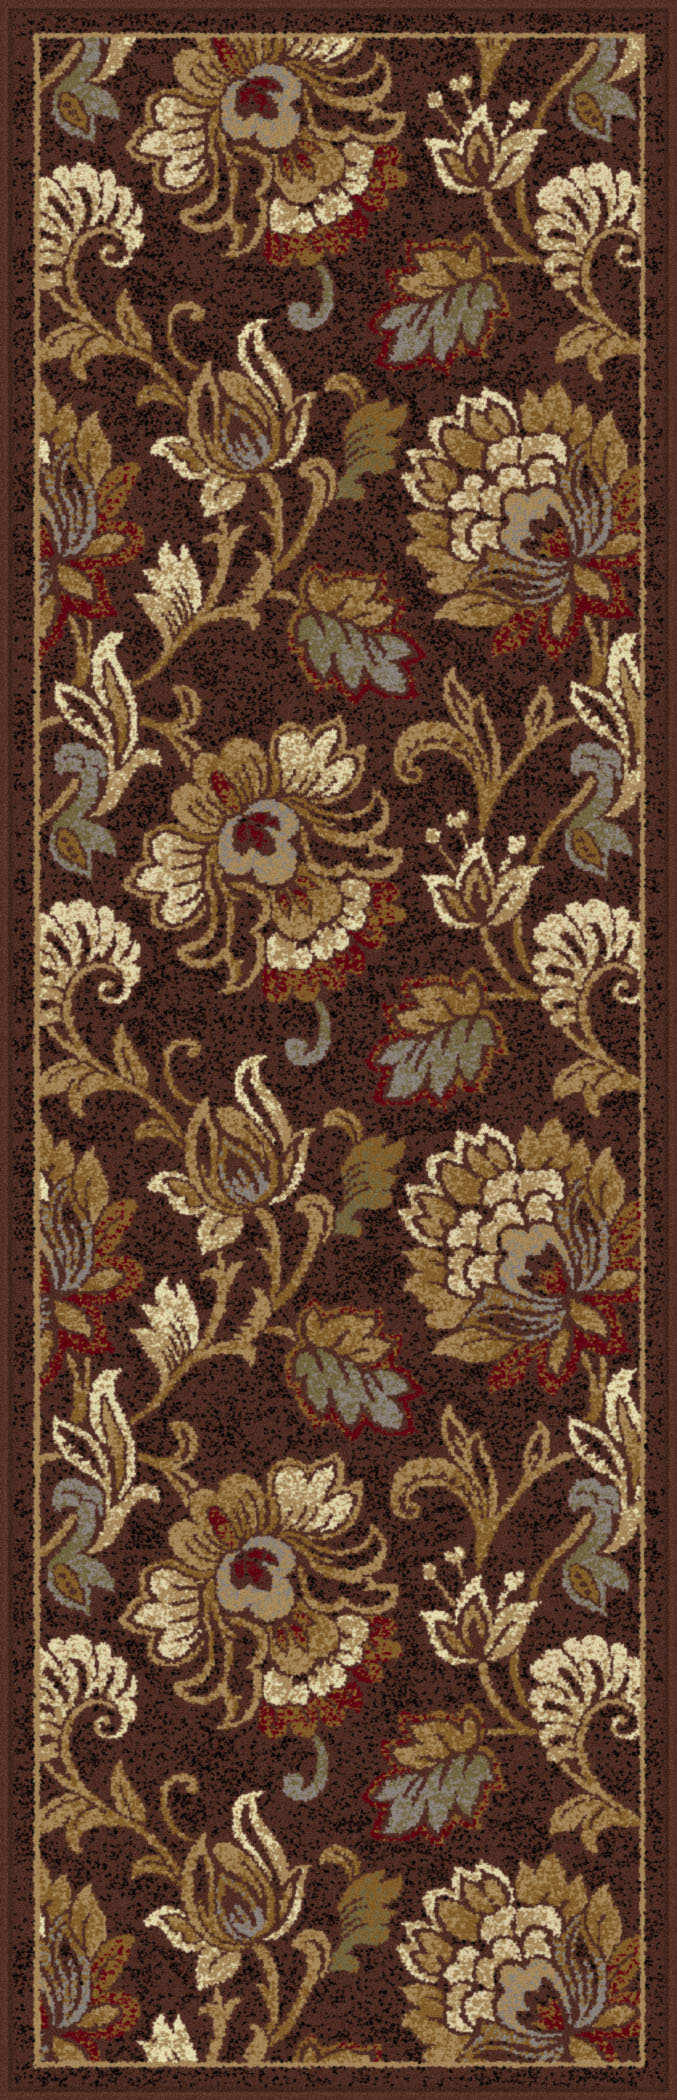 Festival 8998 Brown Transitional Area Rug